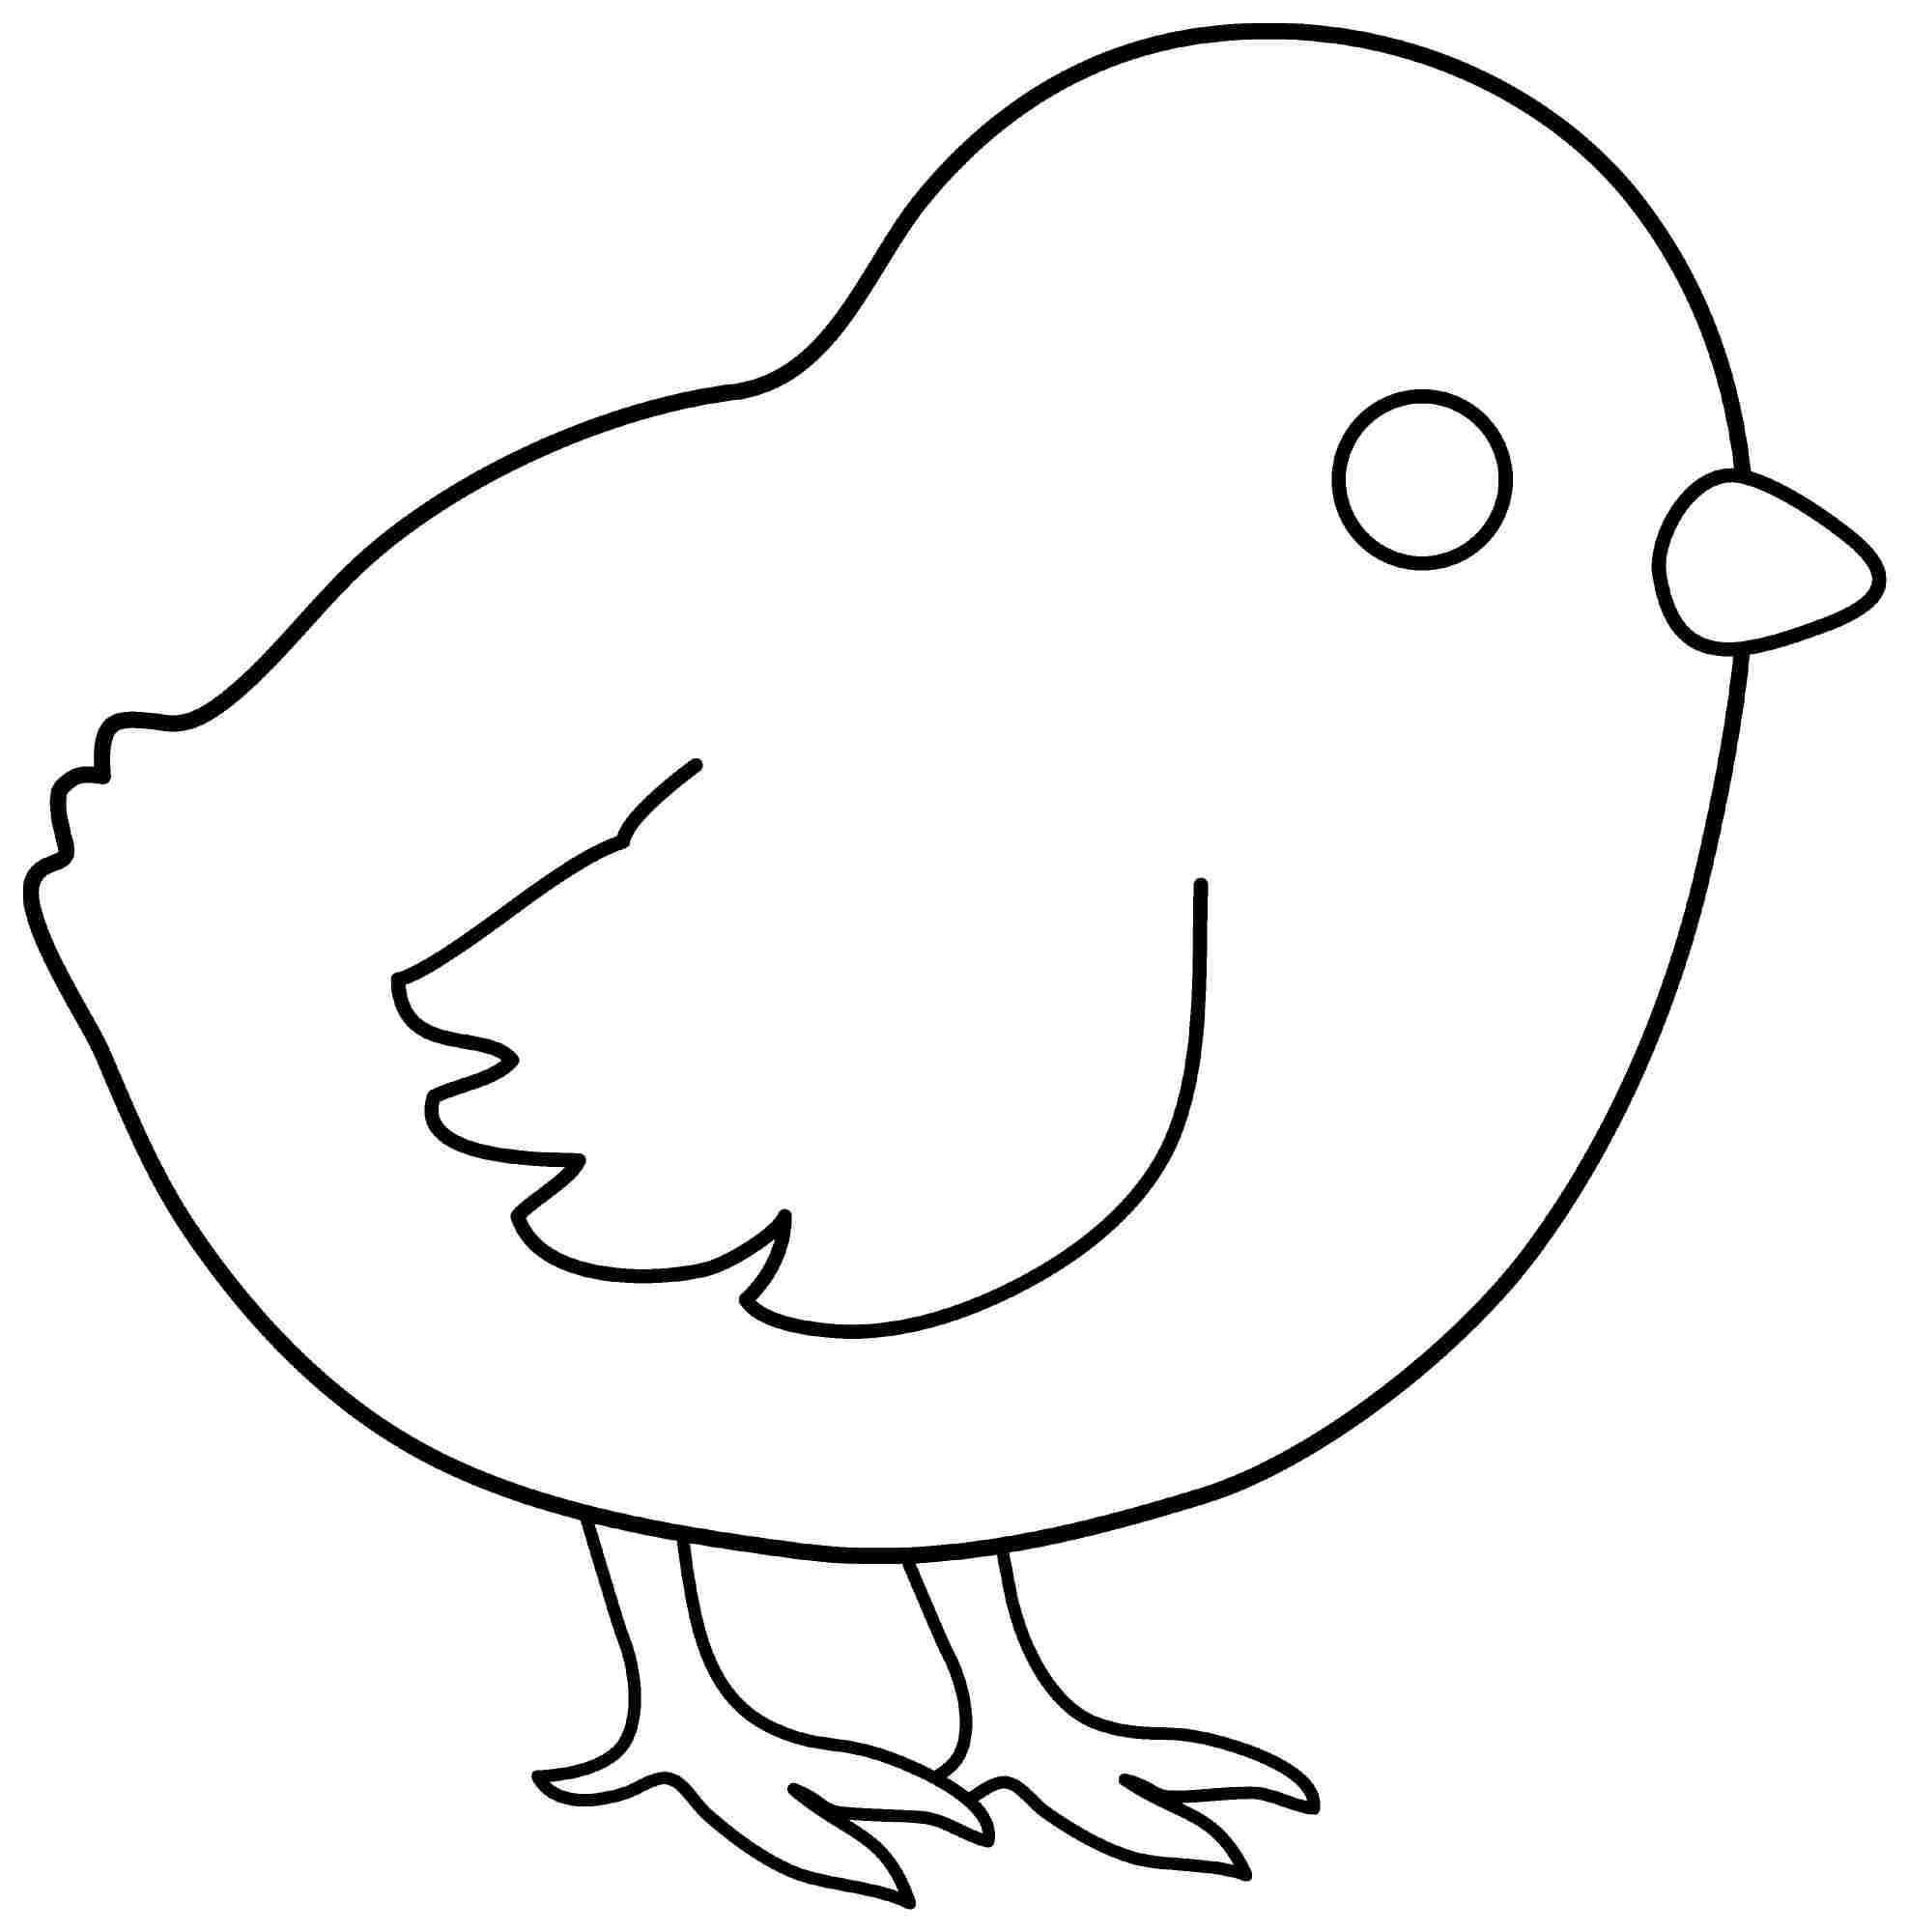 Best Images of Printable Chick And Chicken.